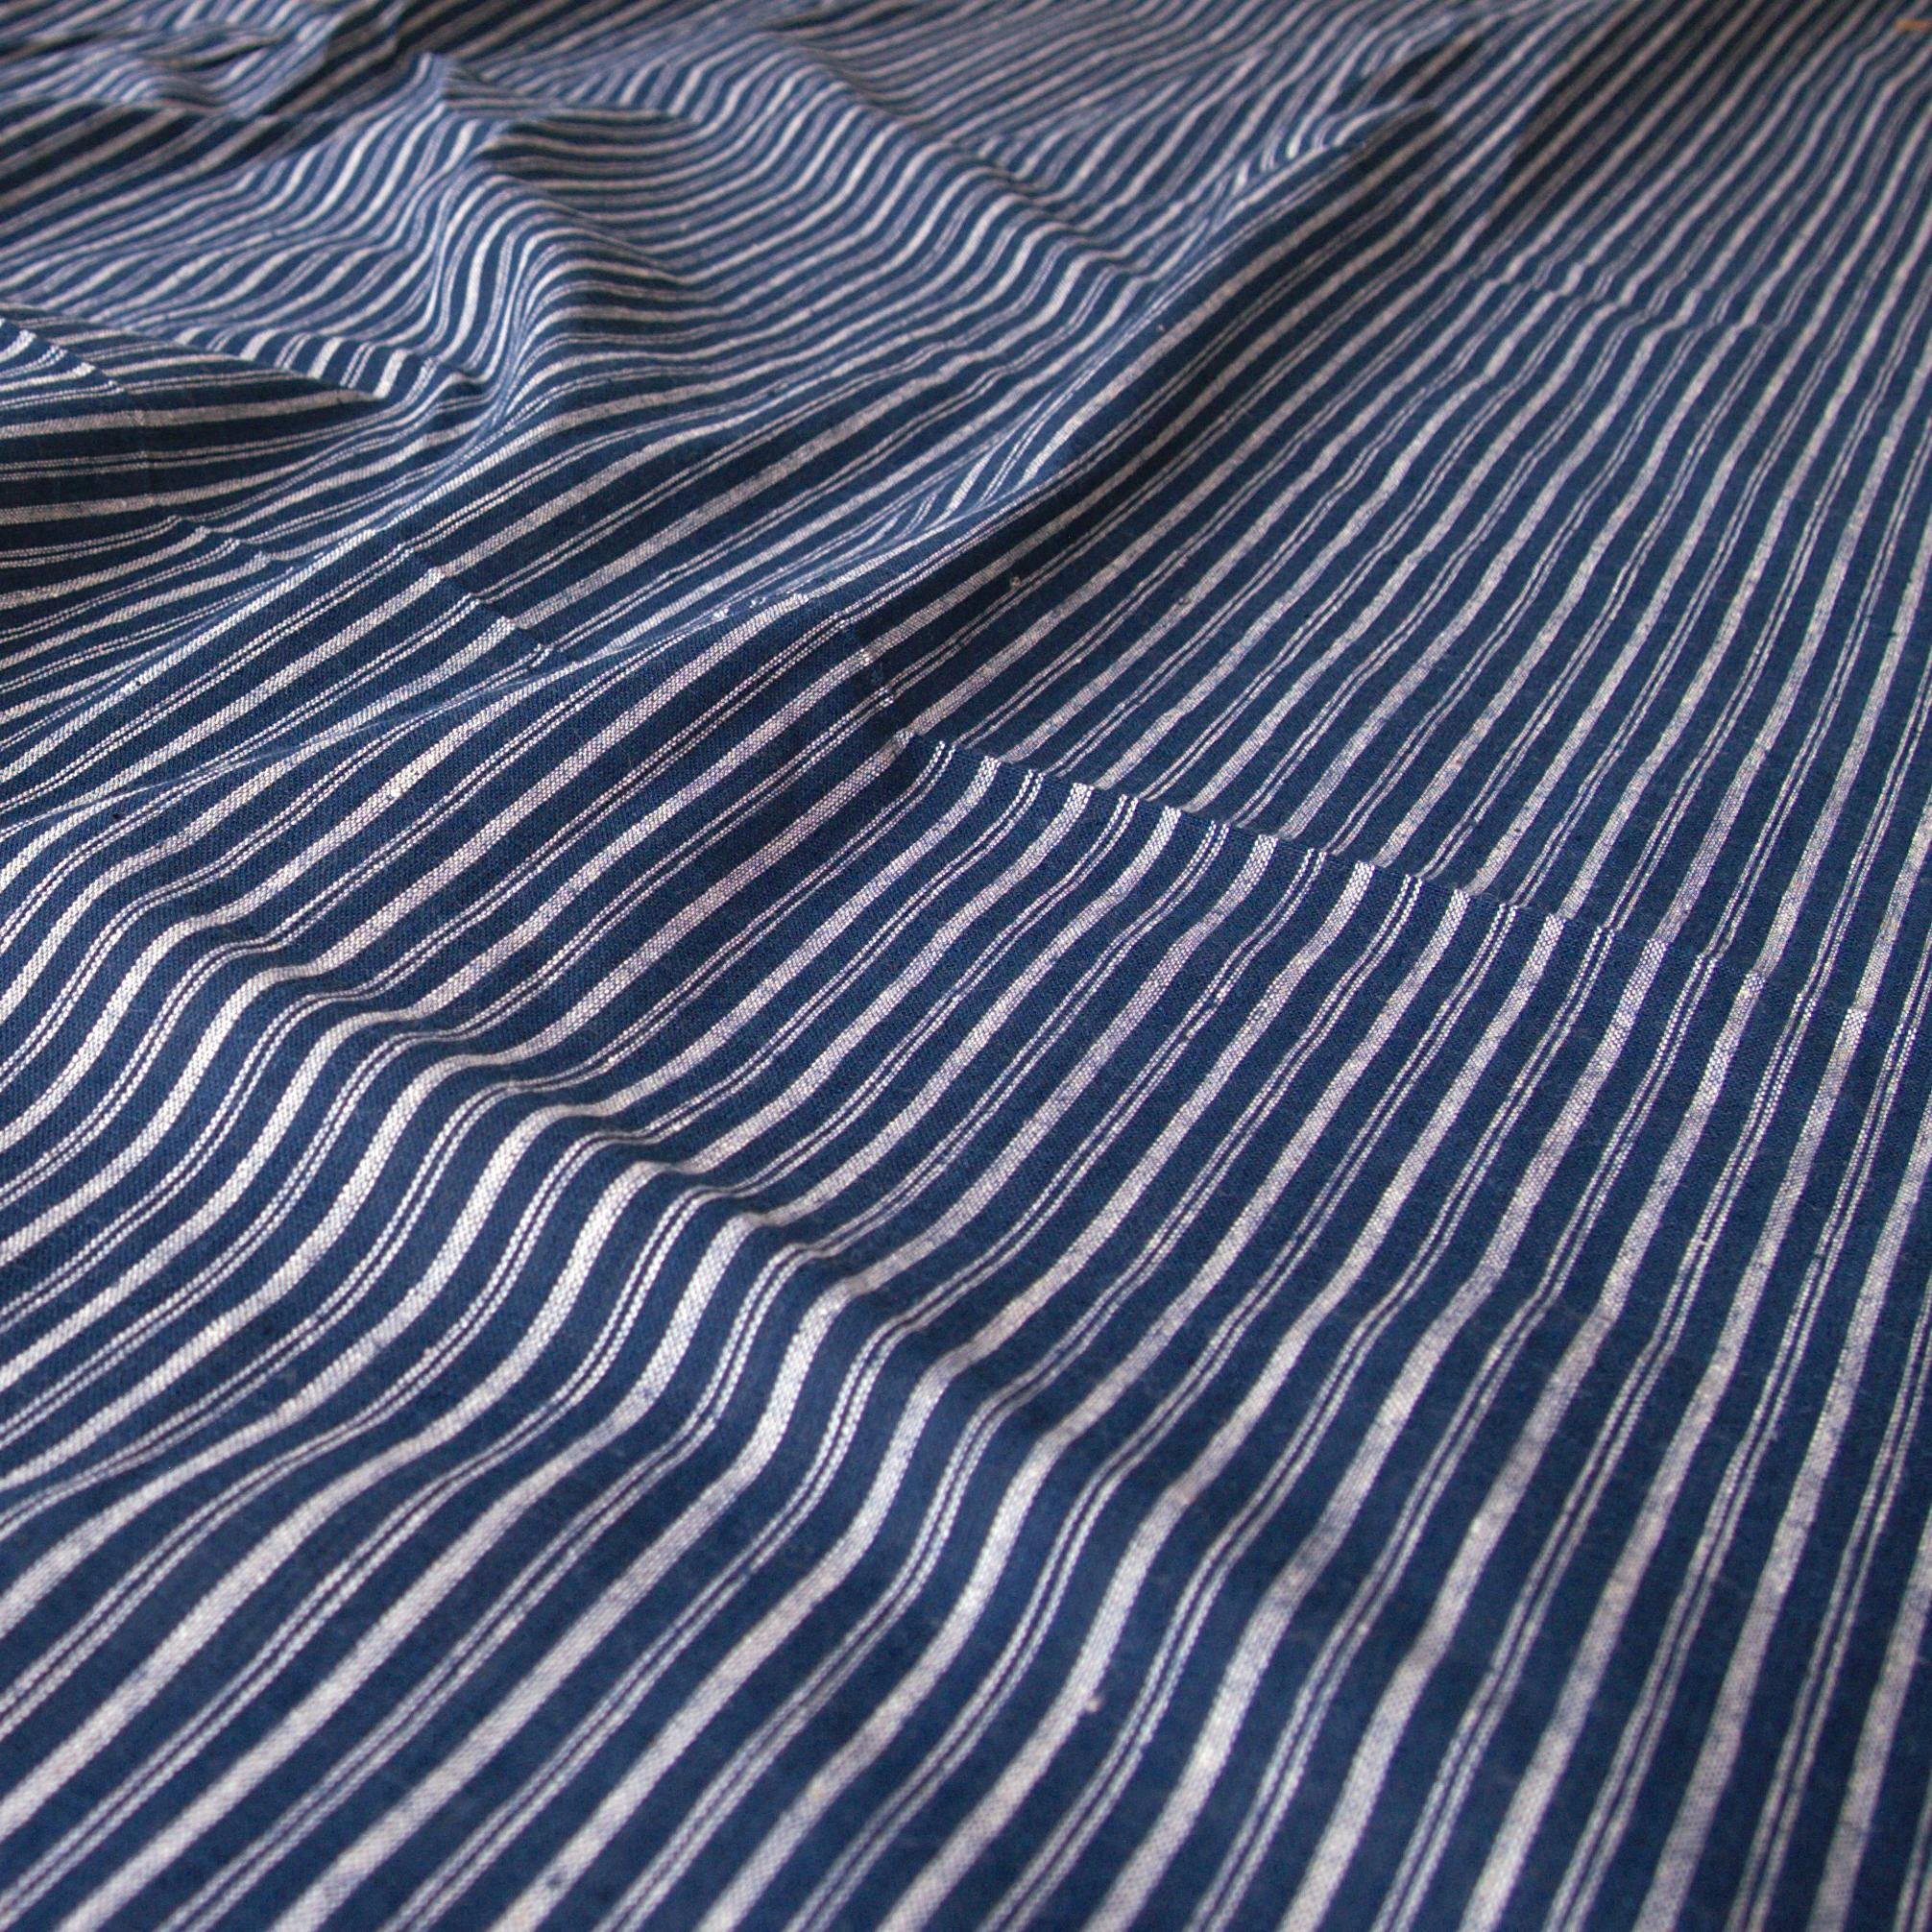 100% Handloom Woven Cotton - Double Stripes - Natural Indigo Warp & Weft, White Warp - Contrast